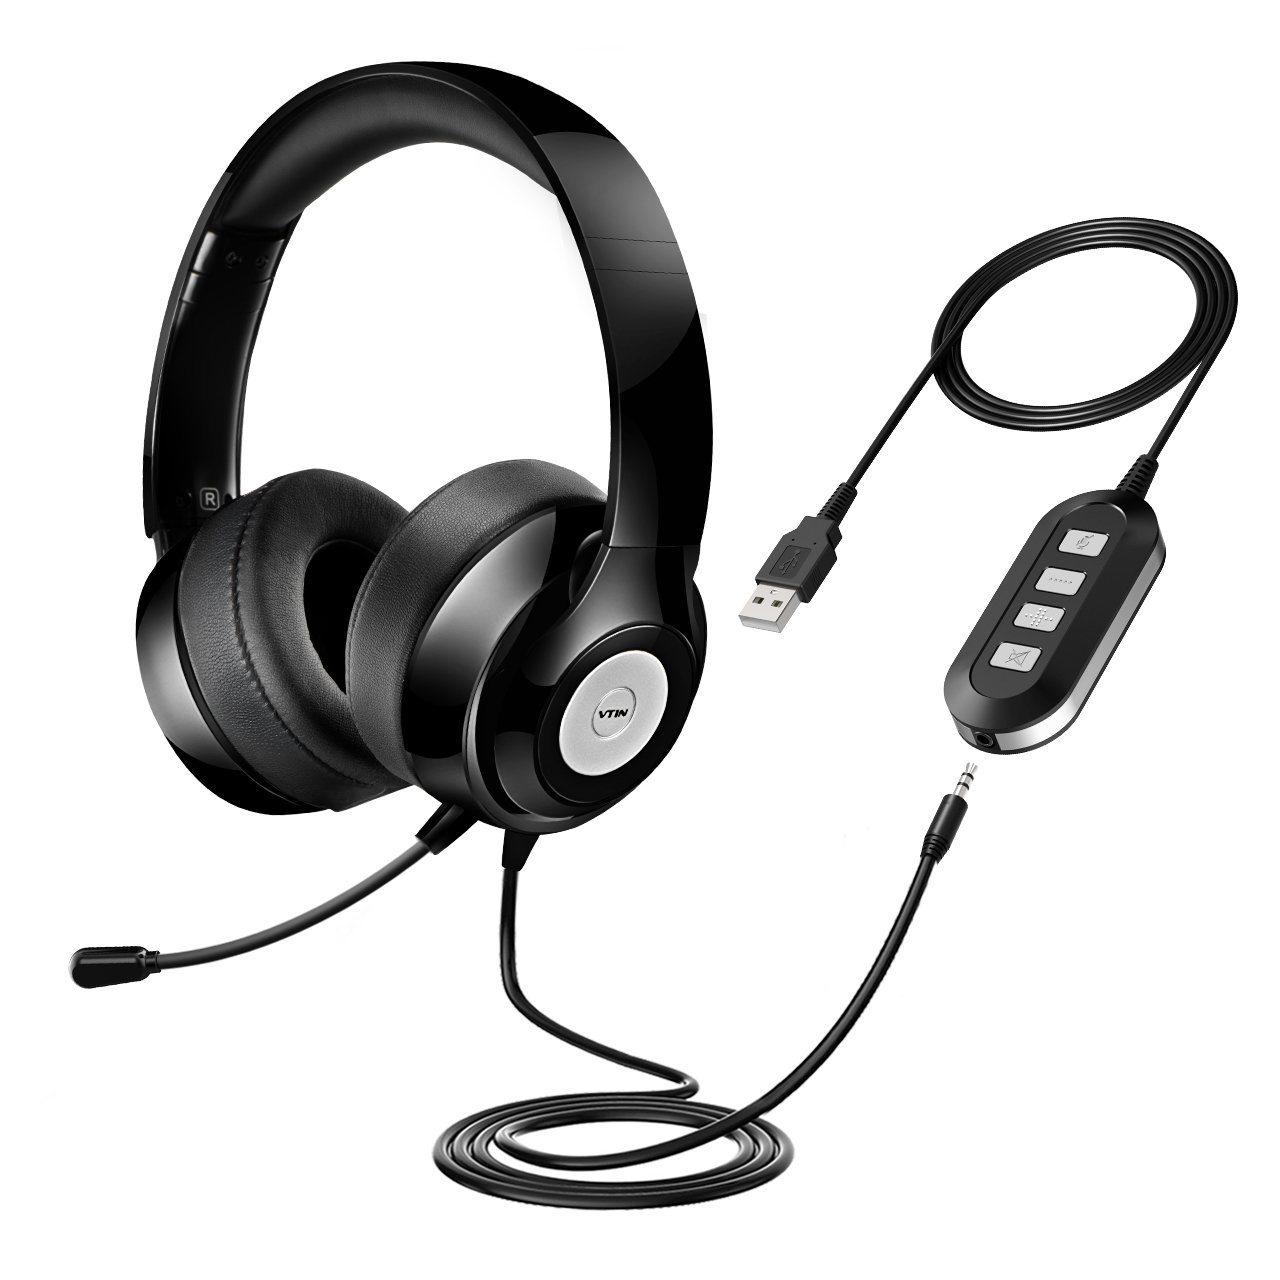 Vtin Headset with Microphone, USB Headset/ 3 5mm Computer Headphone Headset  Noise Cancelling and Hands-Free with Mic, Stereo On-Ear Wired Business